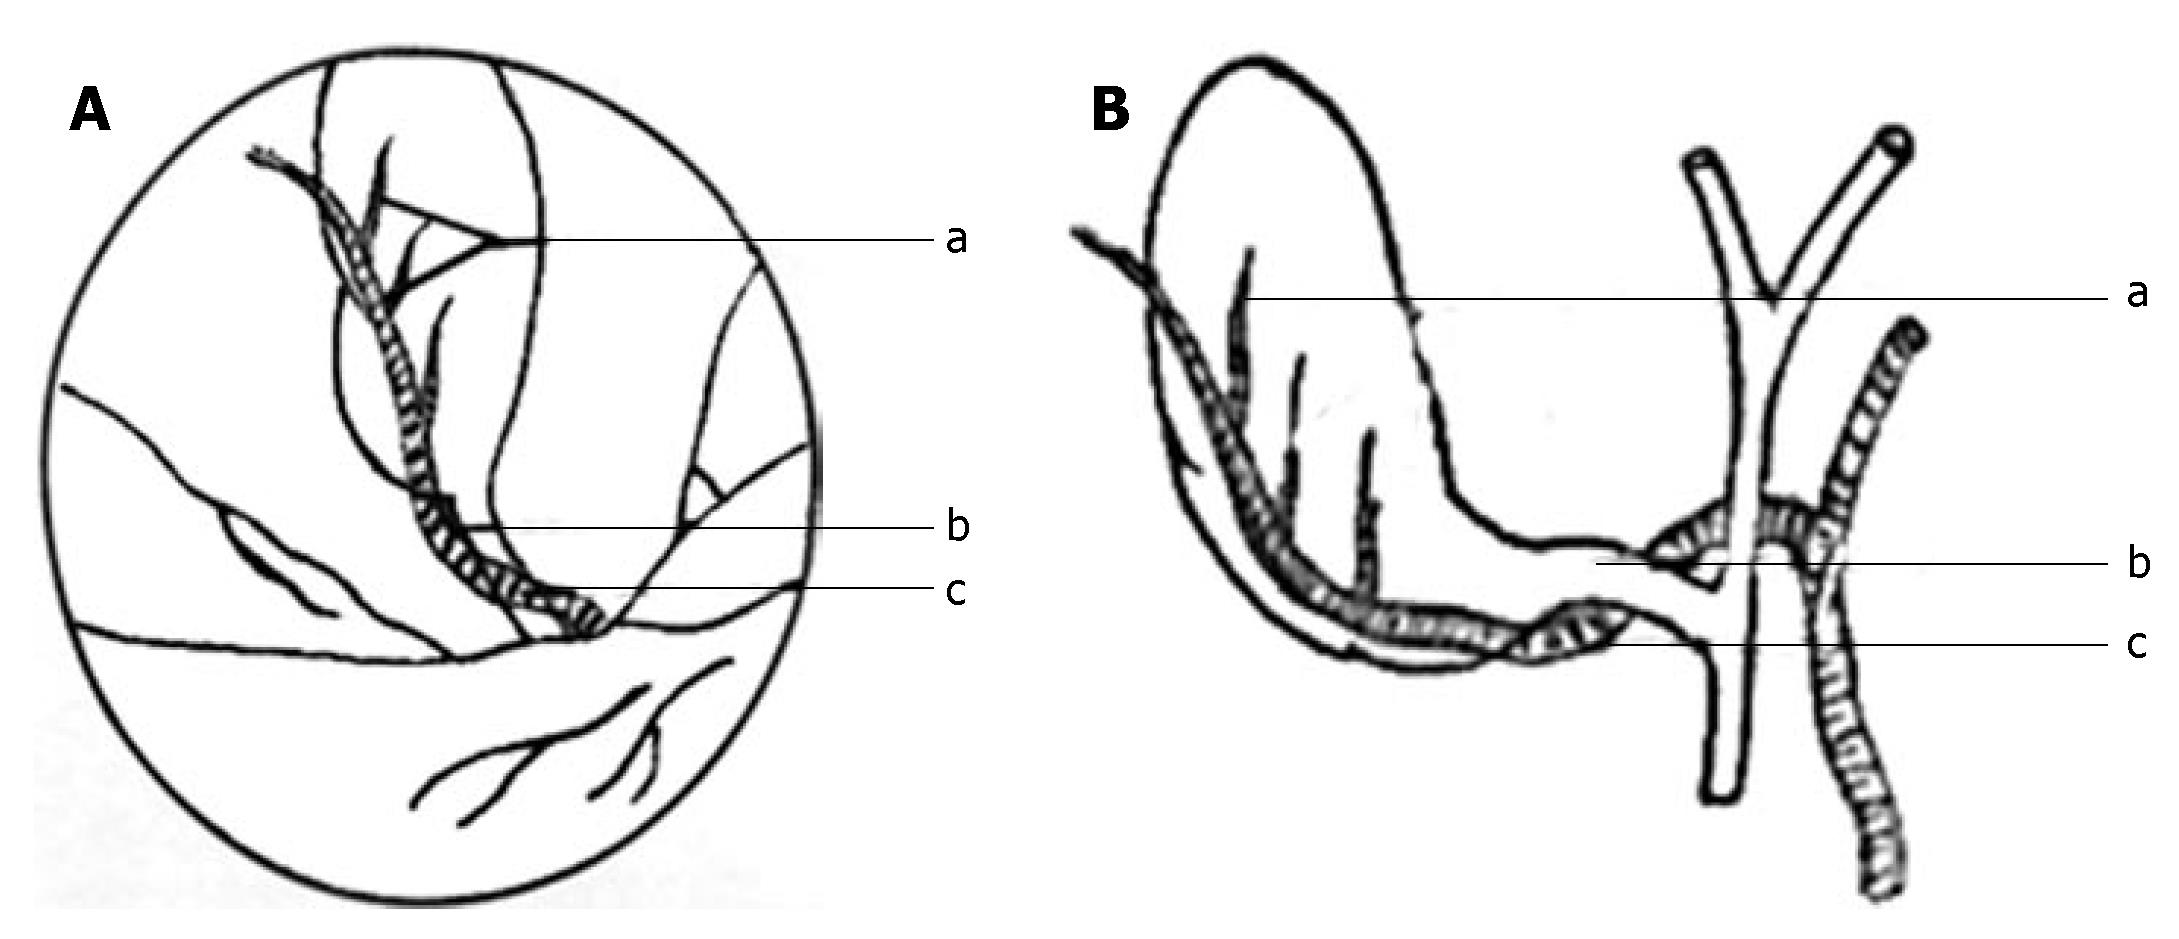 New Classification Of The Anatomic Variations Of Cystic Artery